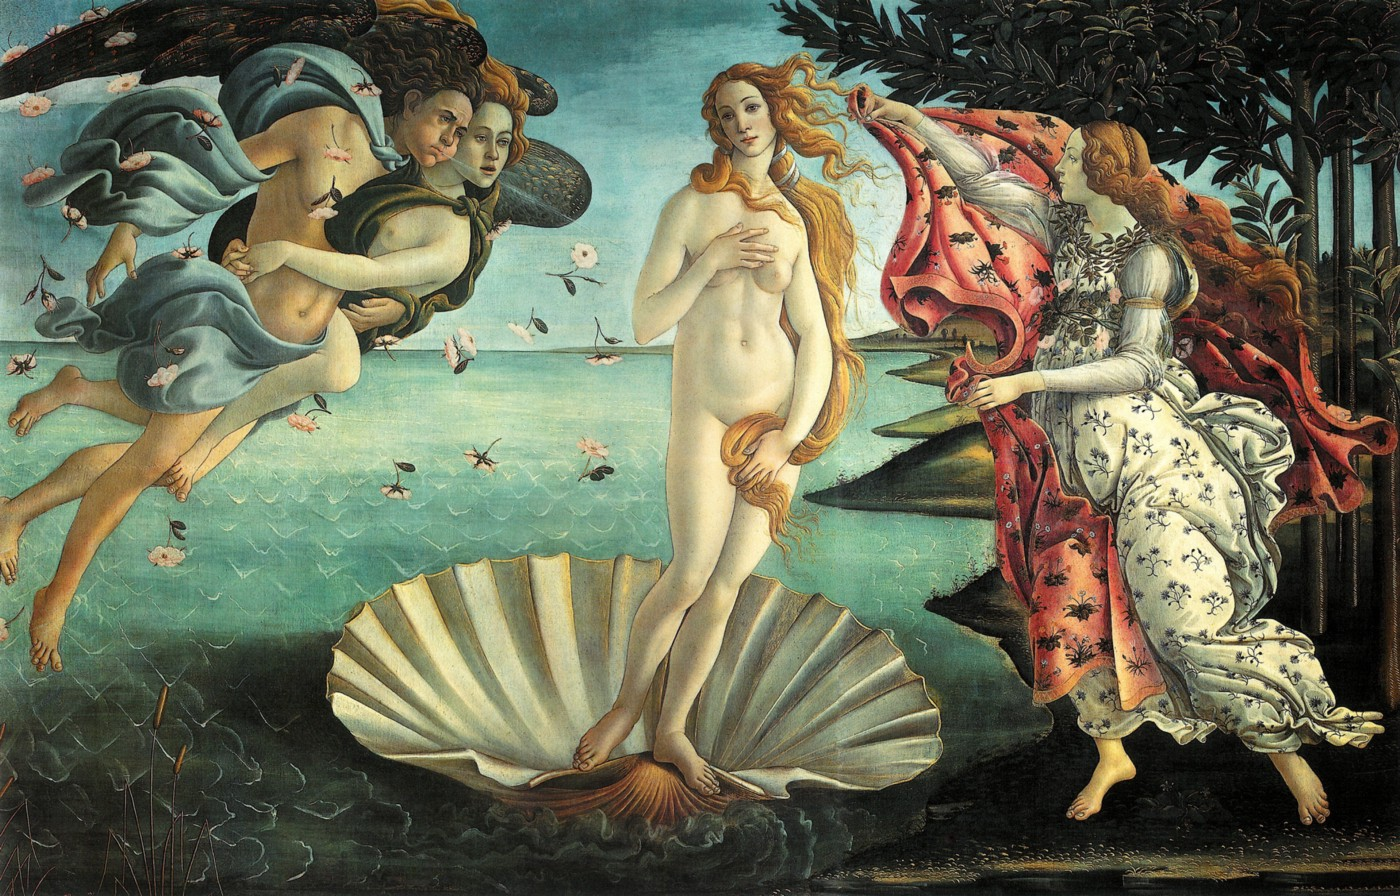 By Sandro Botticelli (1445–1510 CE), commissioned by Lorenzo and Giovanni di Pierfrancesco de'Medici for Villa di Castello